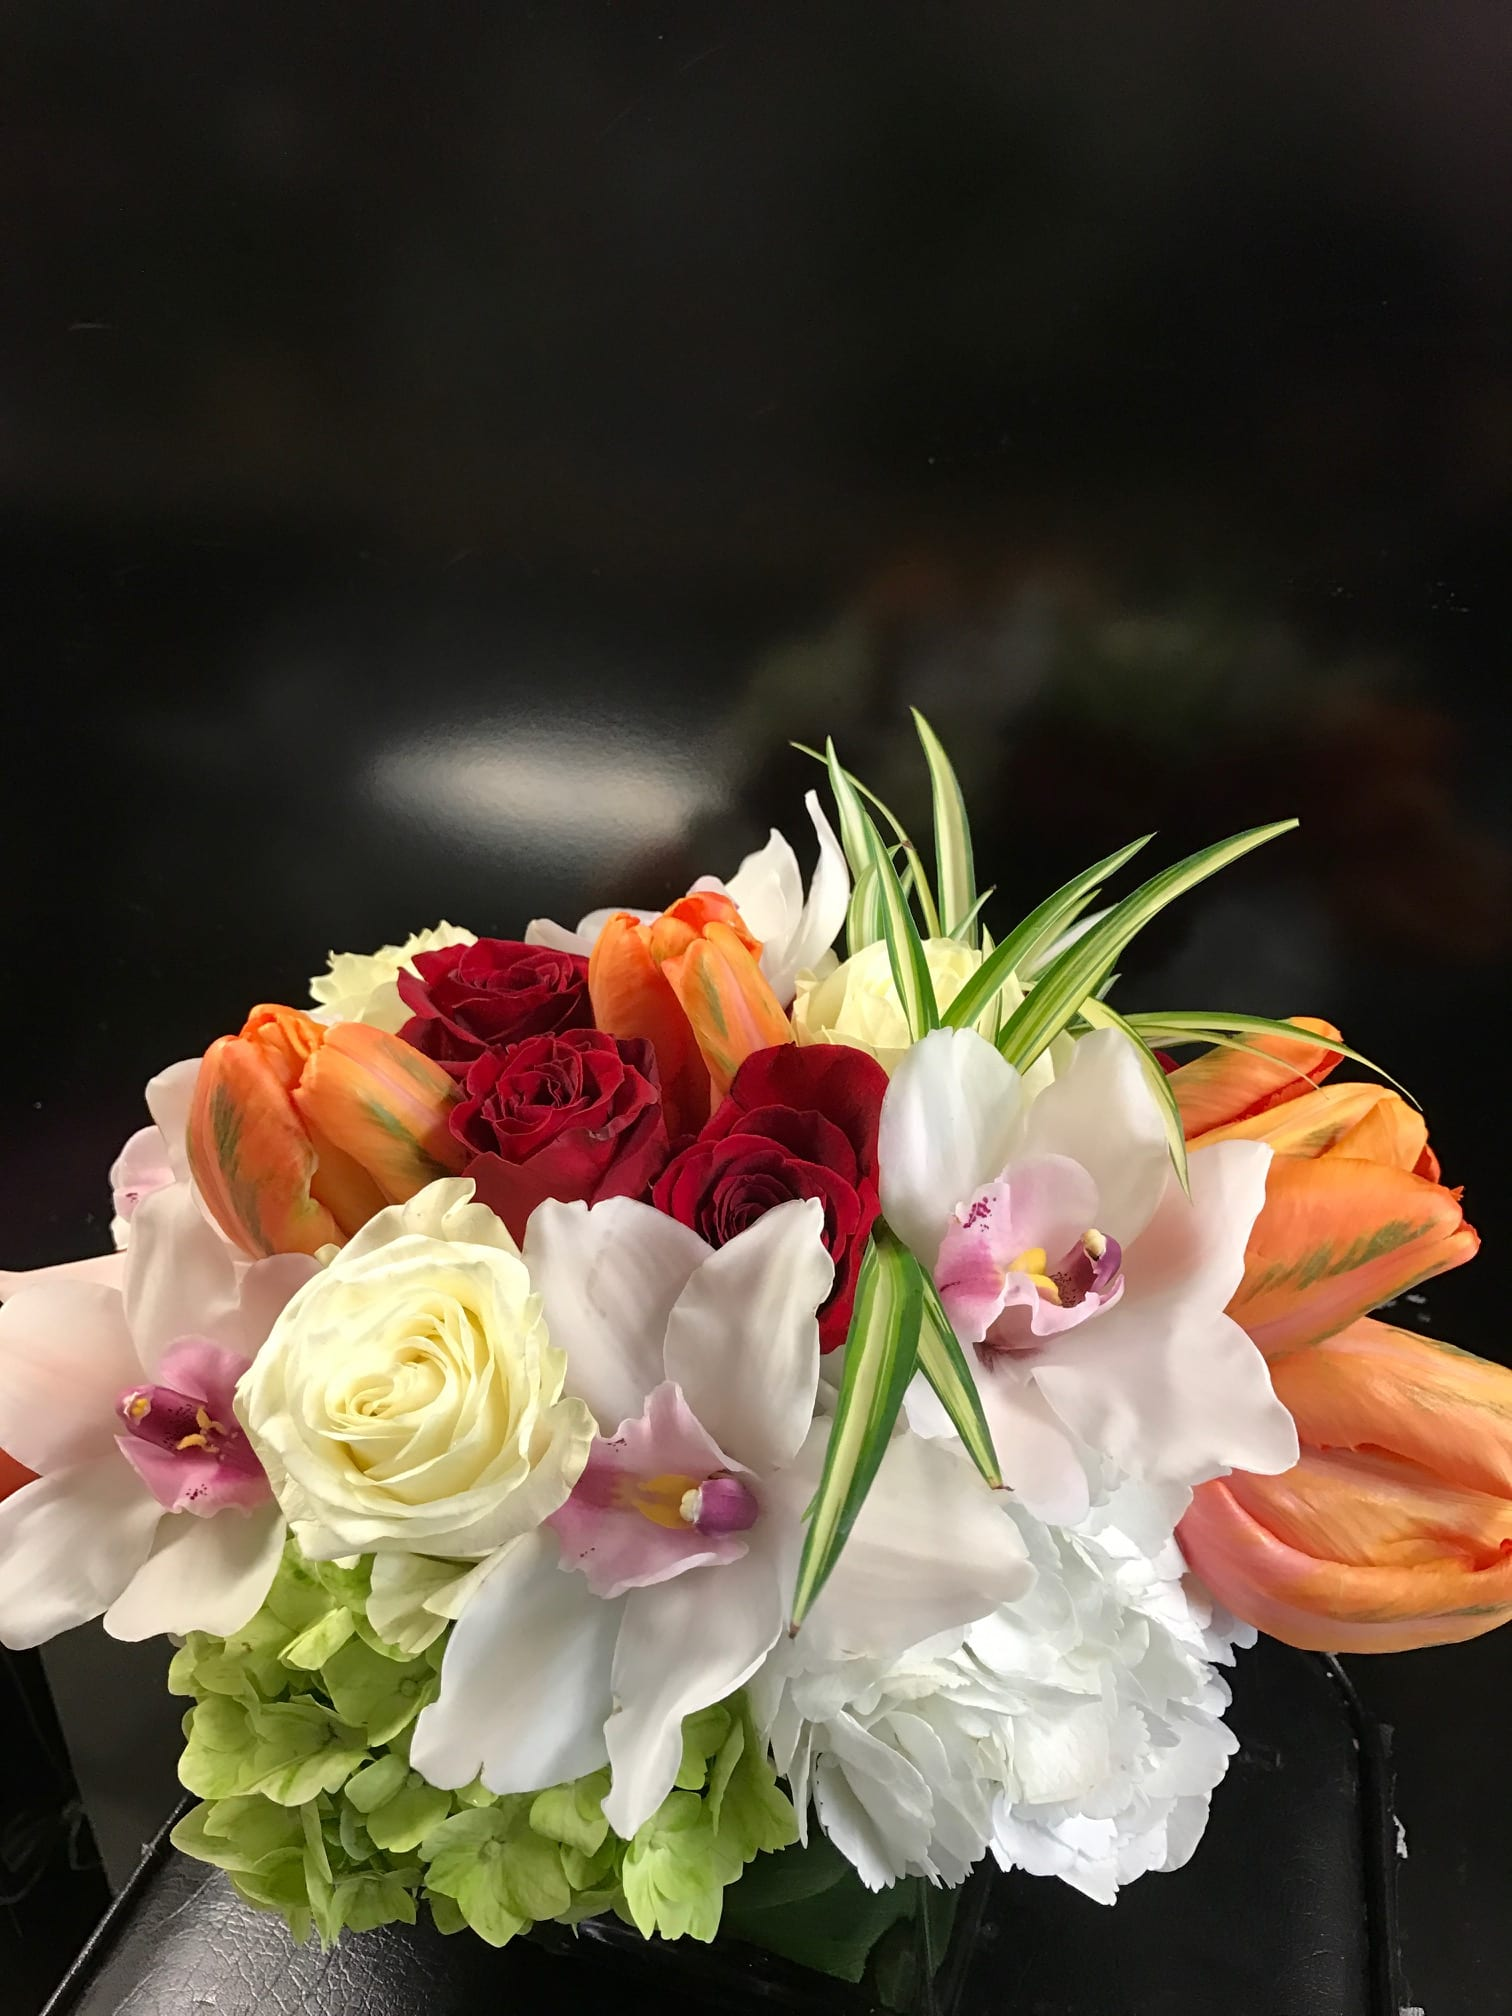 Roses Tulips And Orchids Oh My In San Francisco Ca The Floral Designer